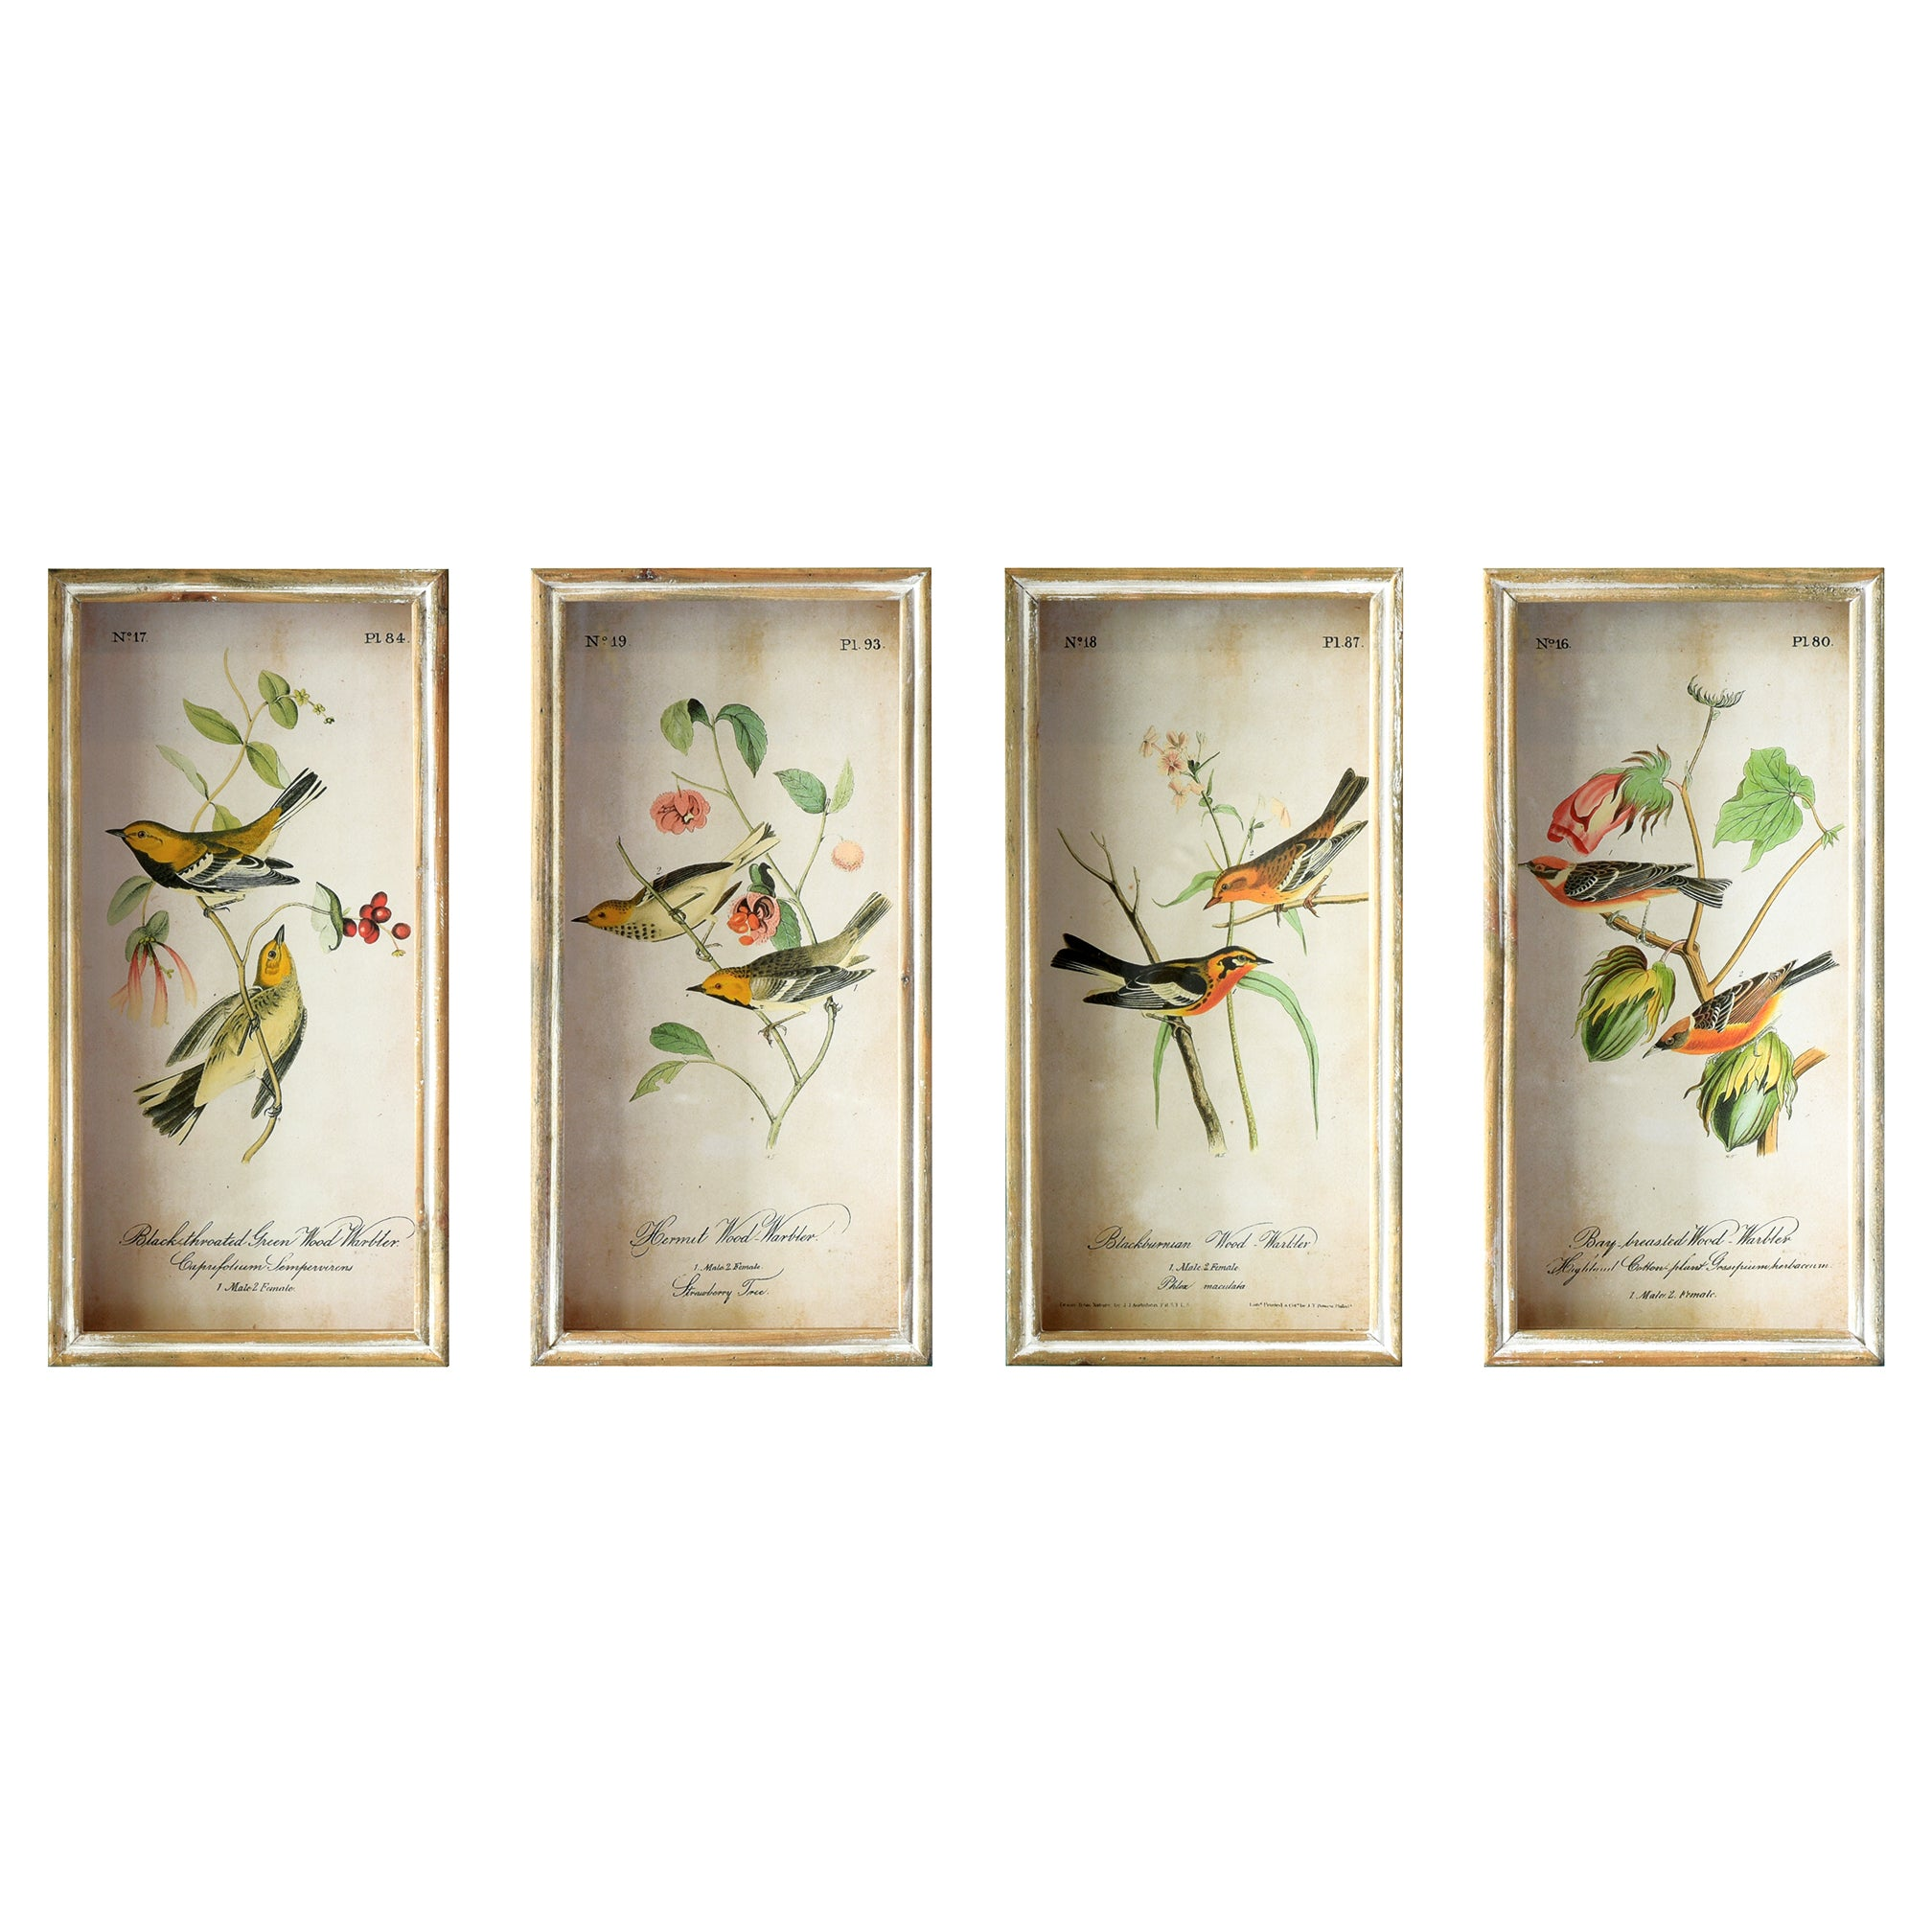 Framed Shadow Box Bird Illustration Wall Art Prints - Set of 4